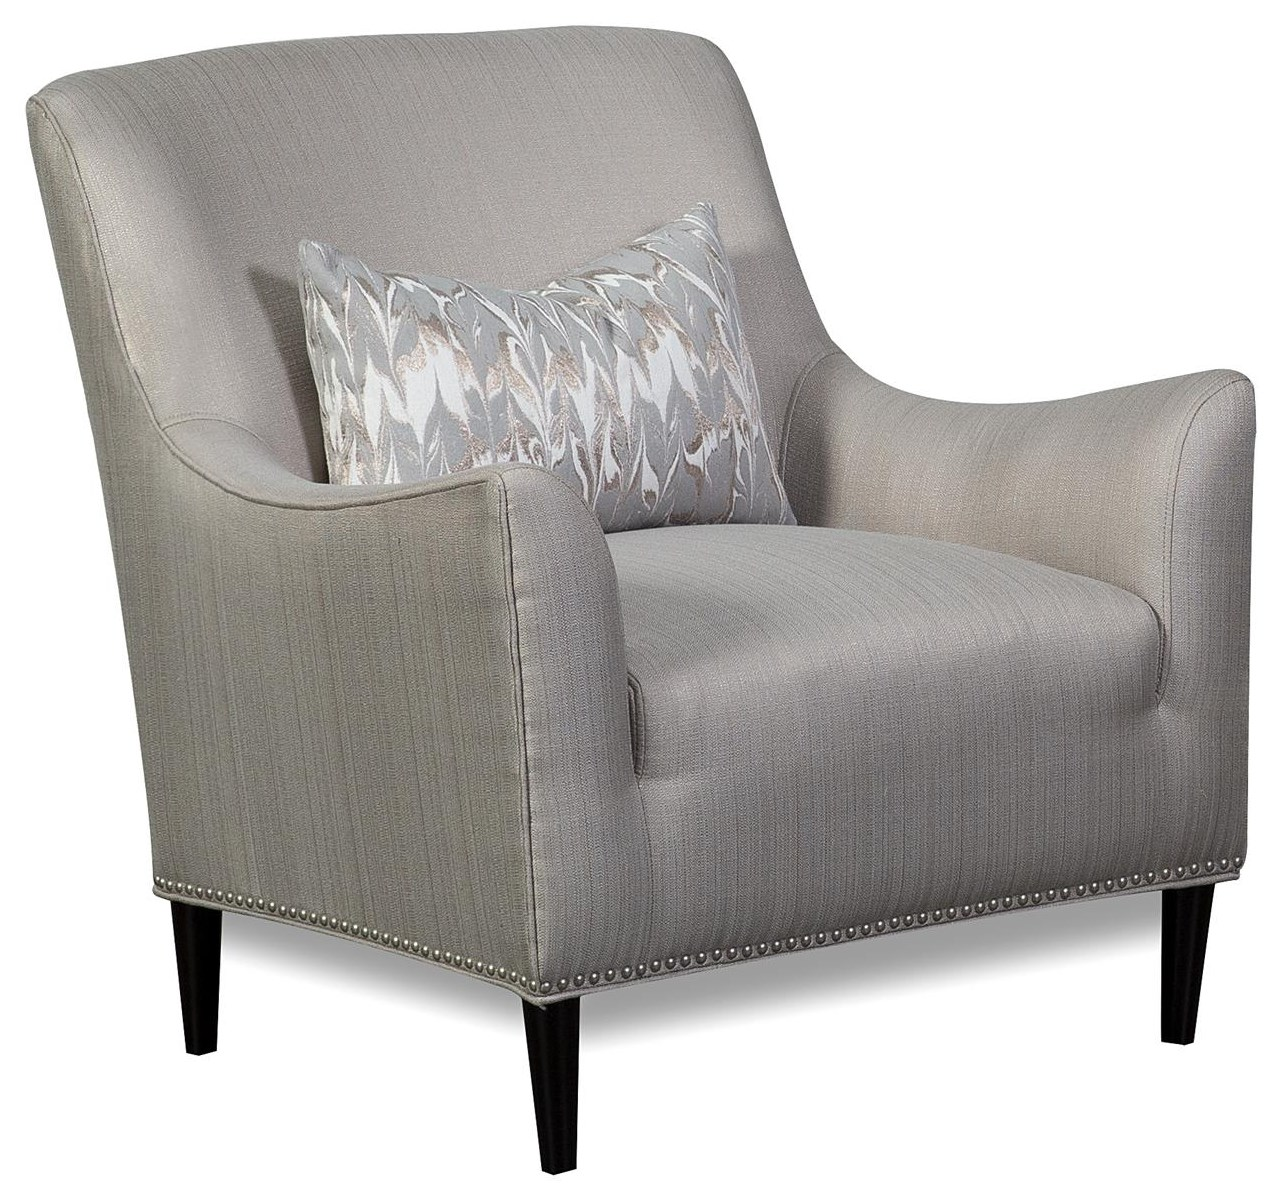 Ava Fresco Easton Accent Chair by Aria Designs at Stoney Creek Furniture